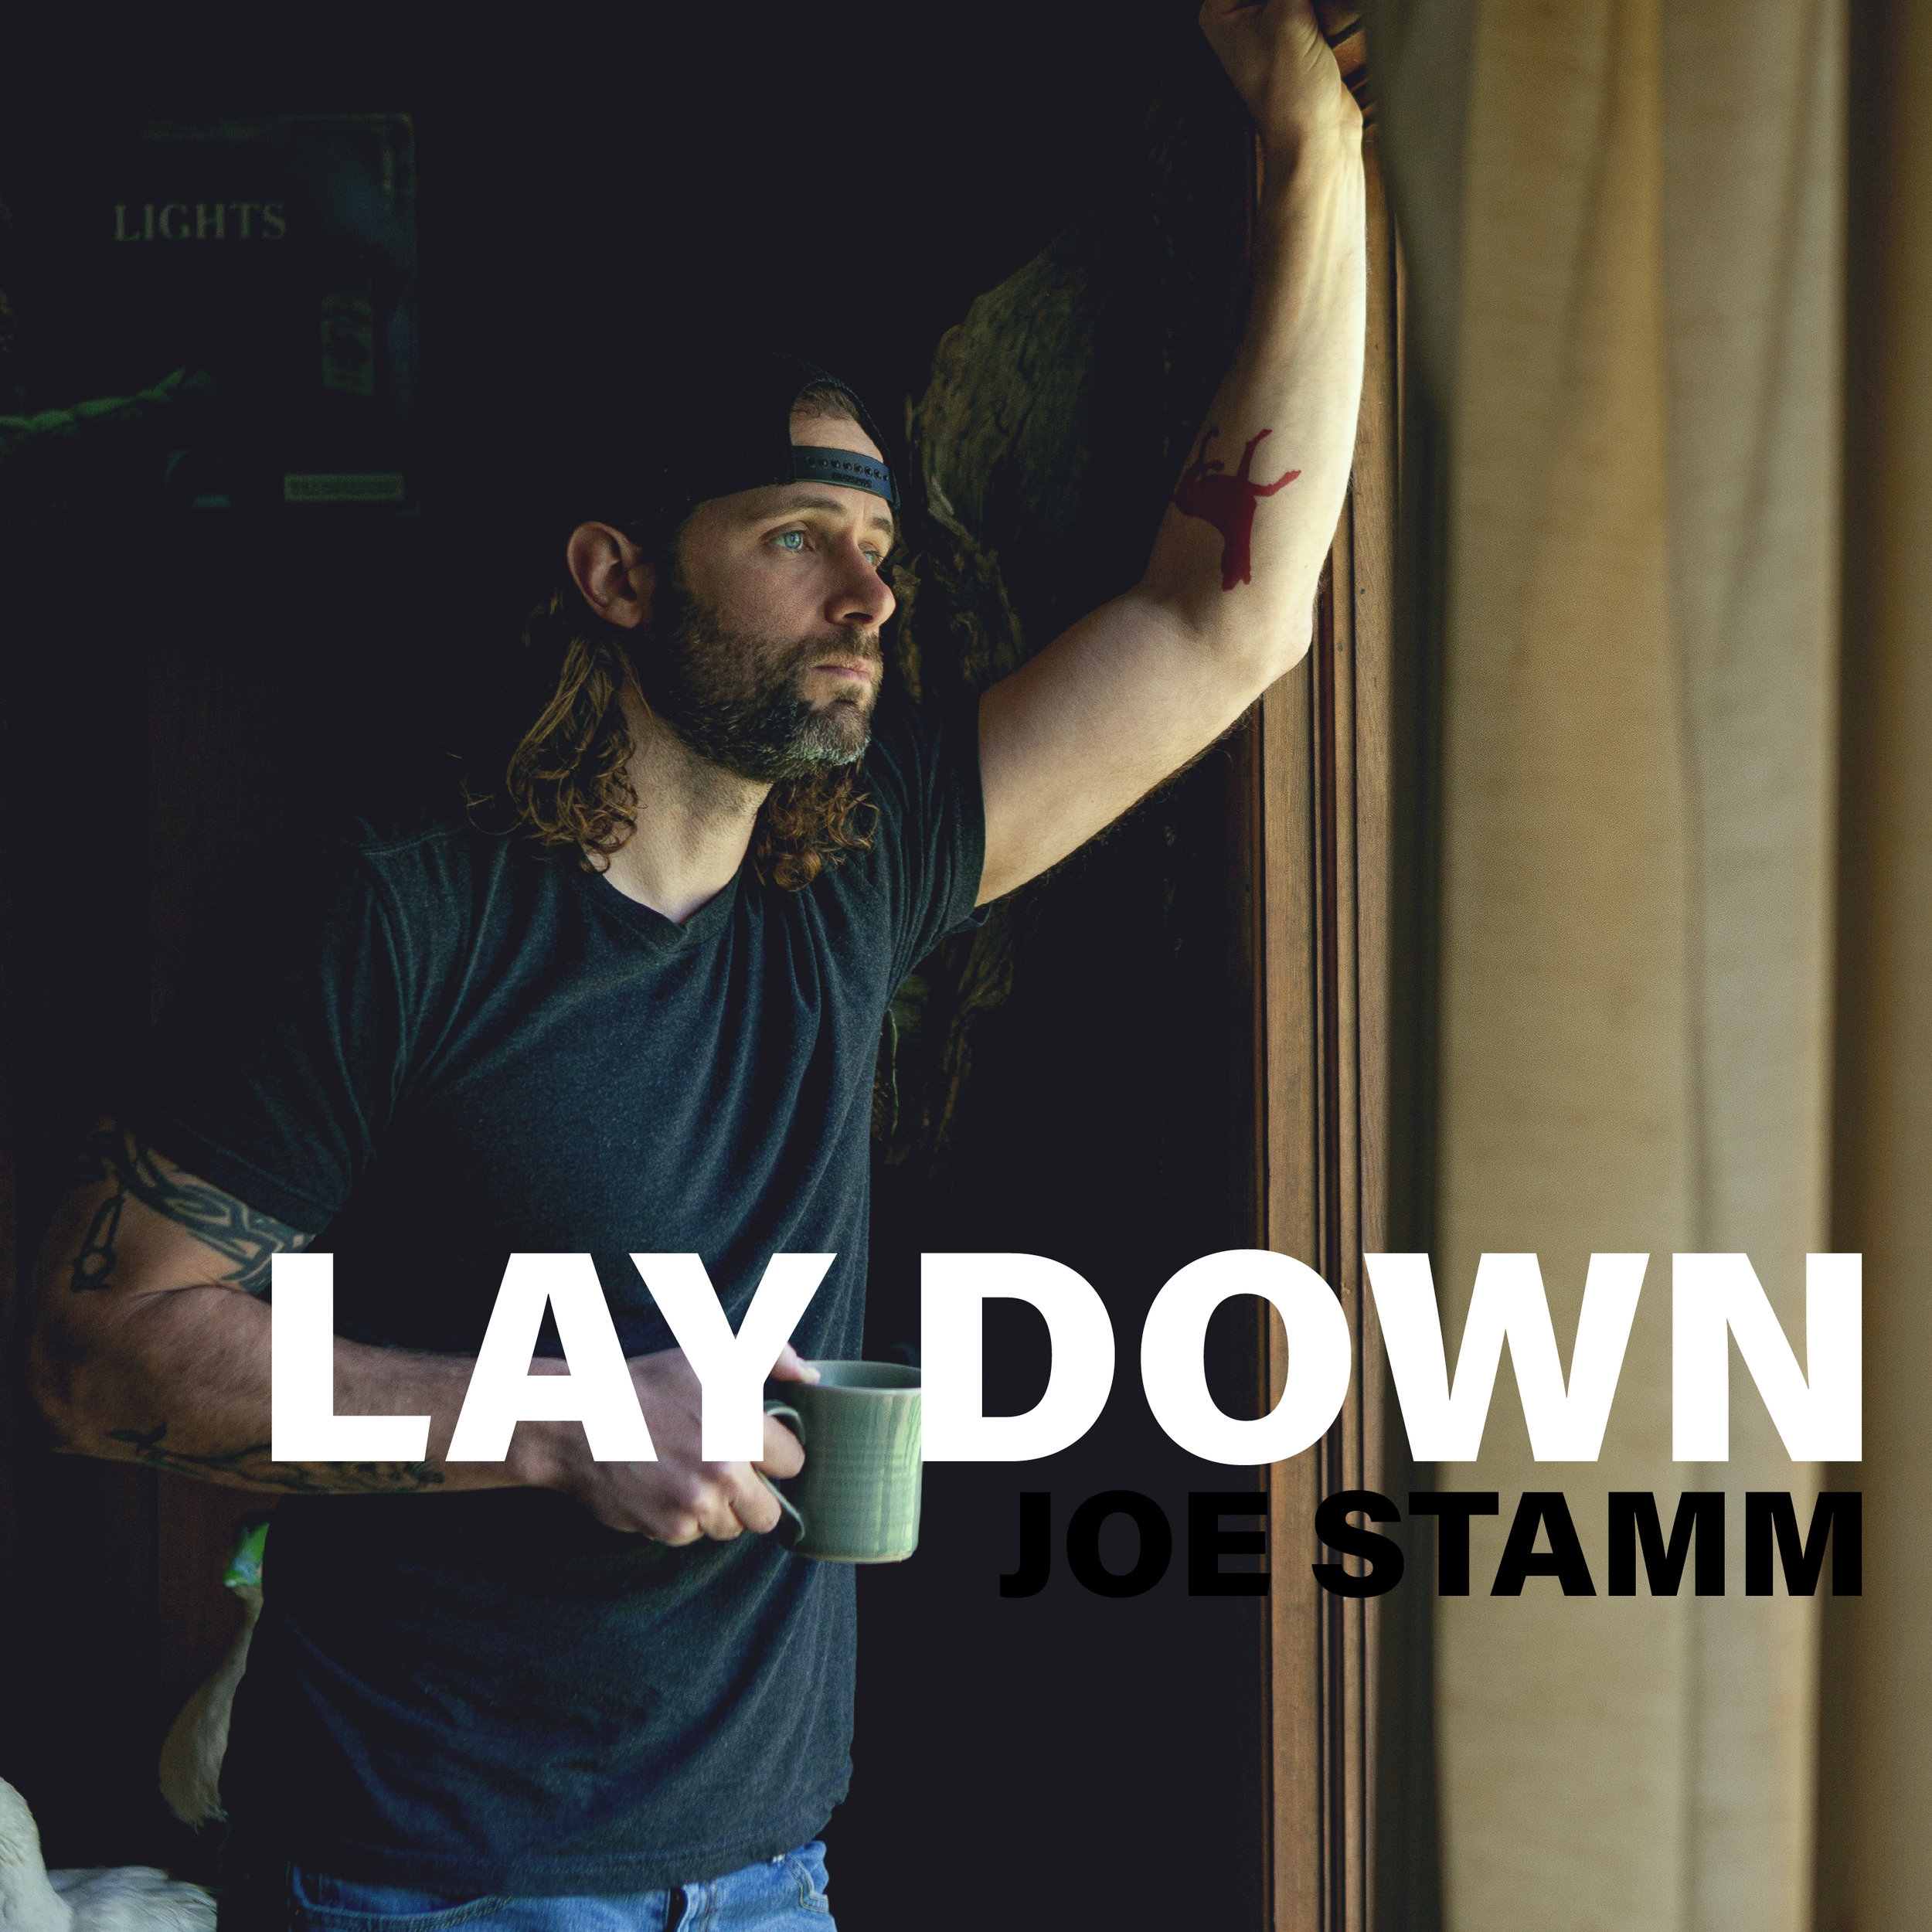 Joe Stamm Lay Down Album Art FINAL.jpg